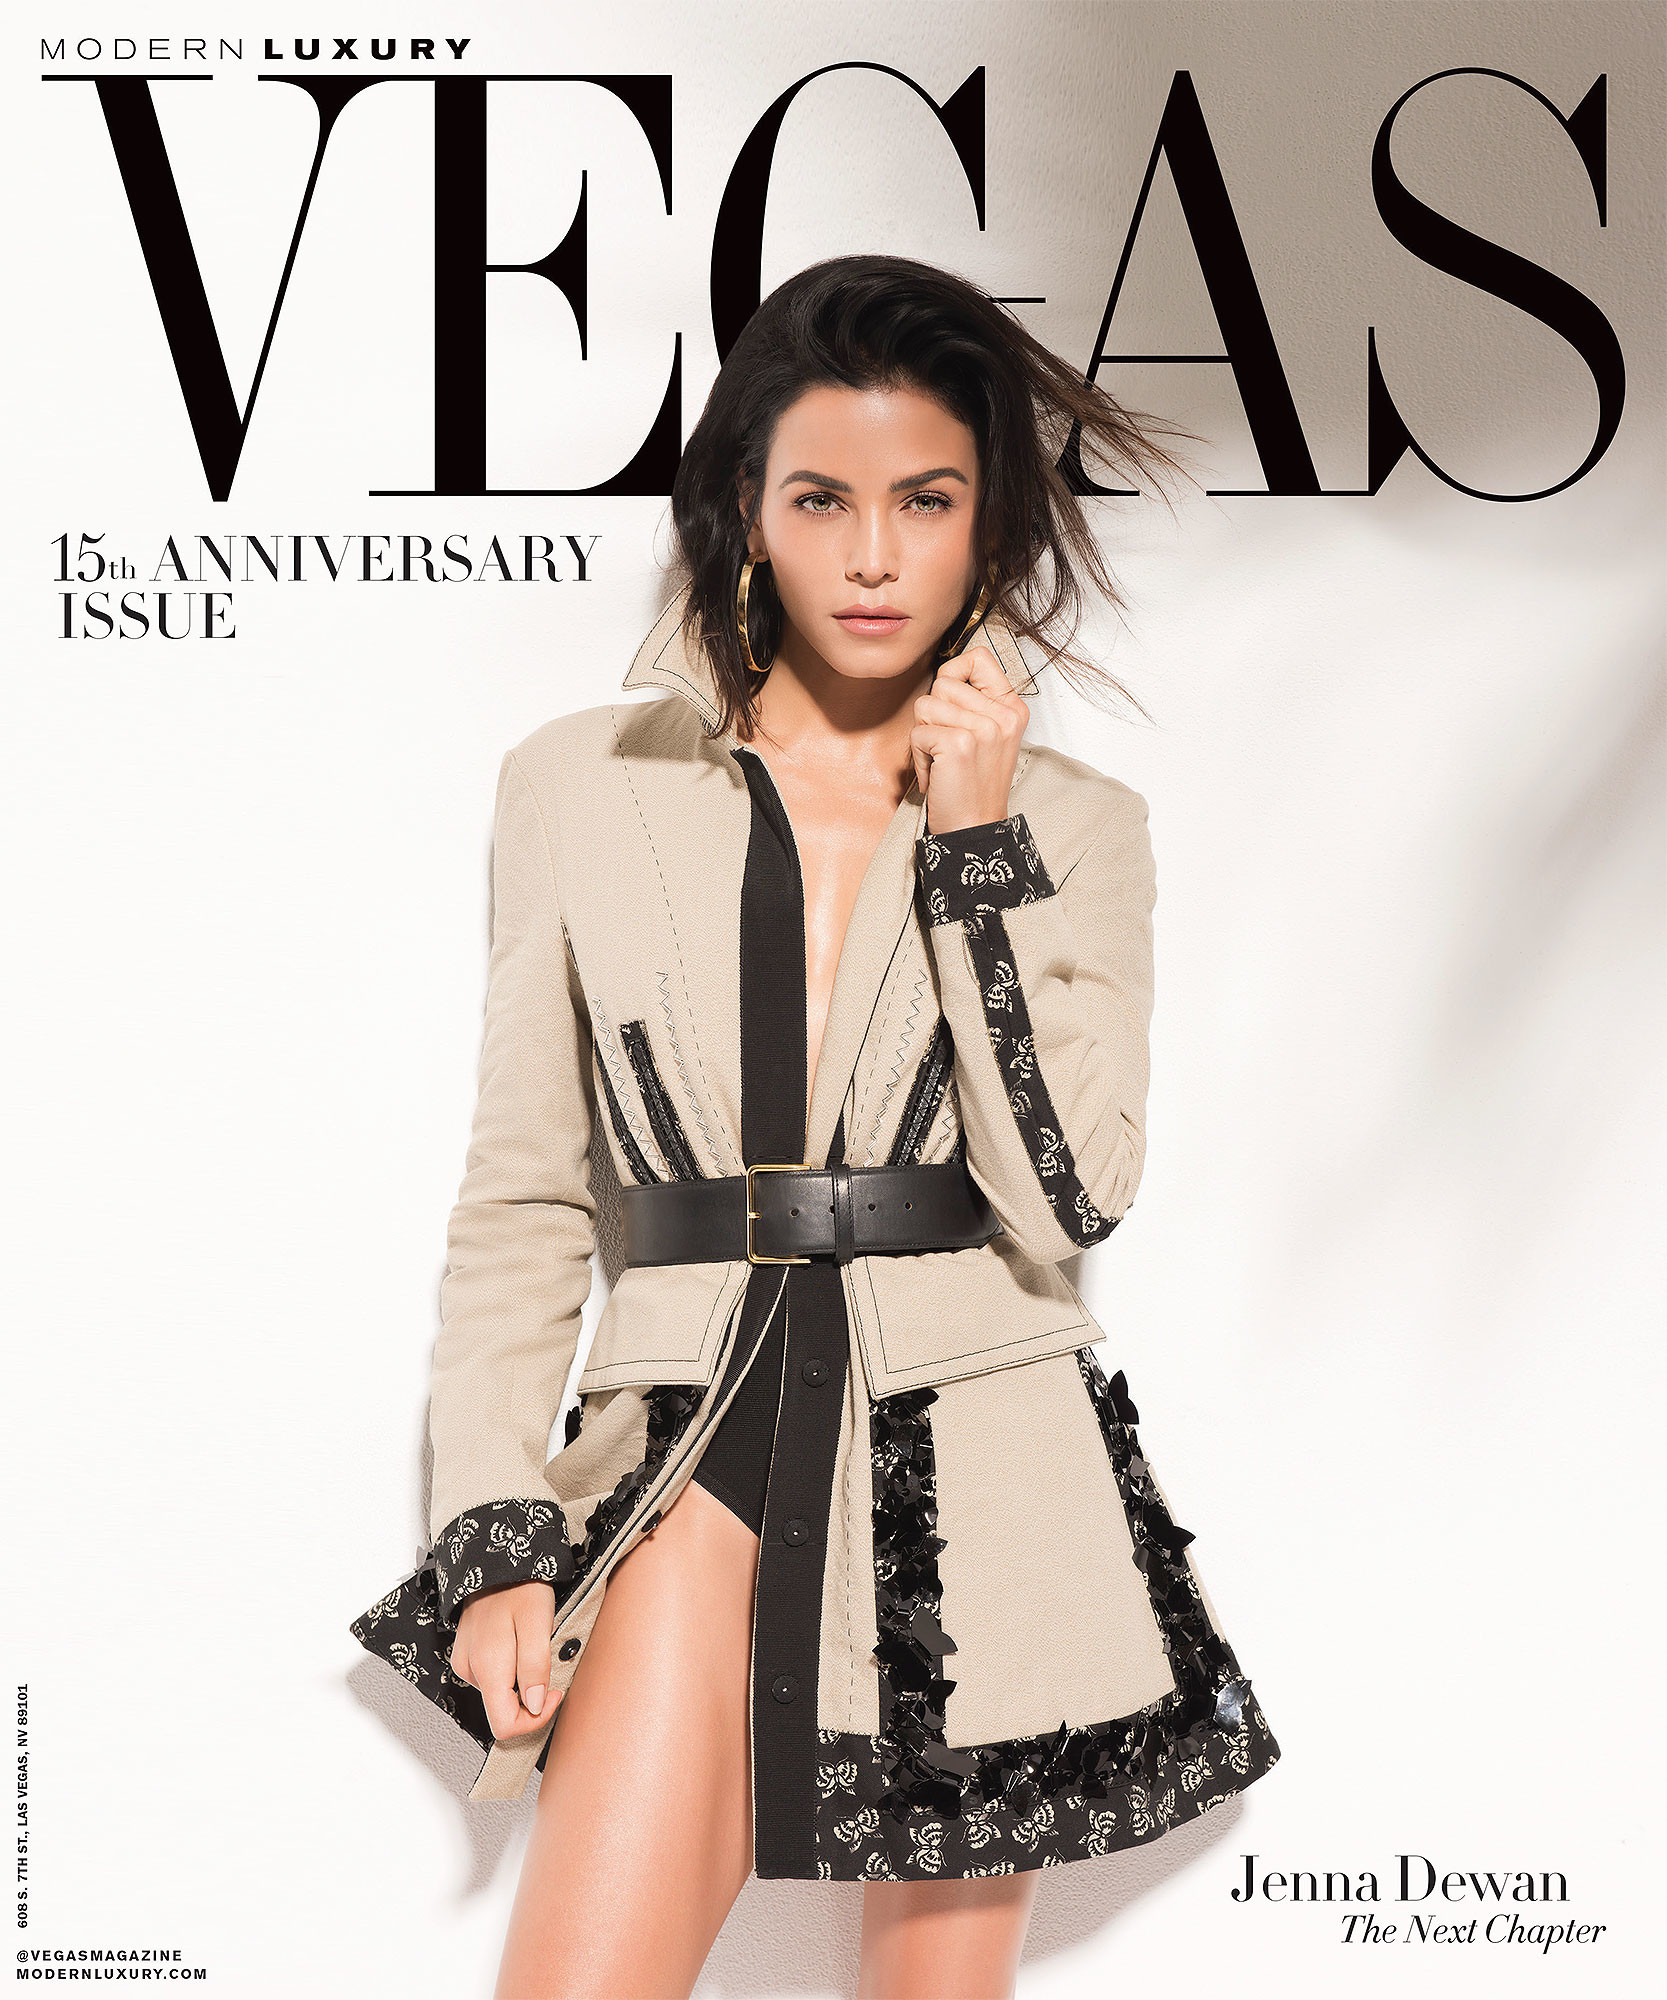 1667x2000 VEGAS Magazine Celebrates its 15th Anniversary Issue with cover star Jenna  Dewan and Downtown Summerlin®